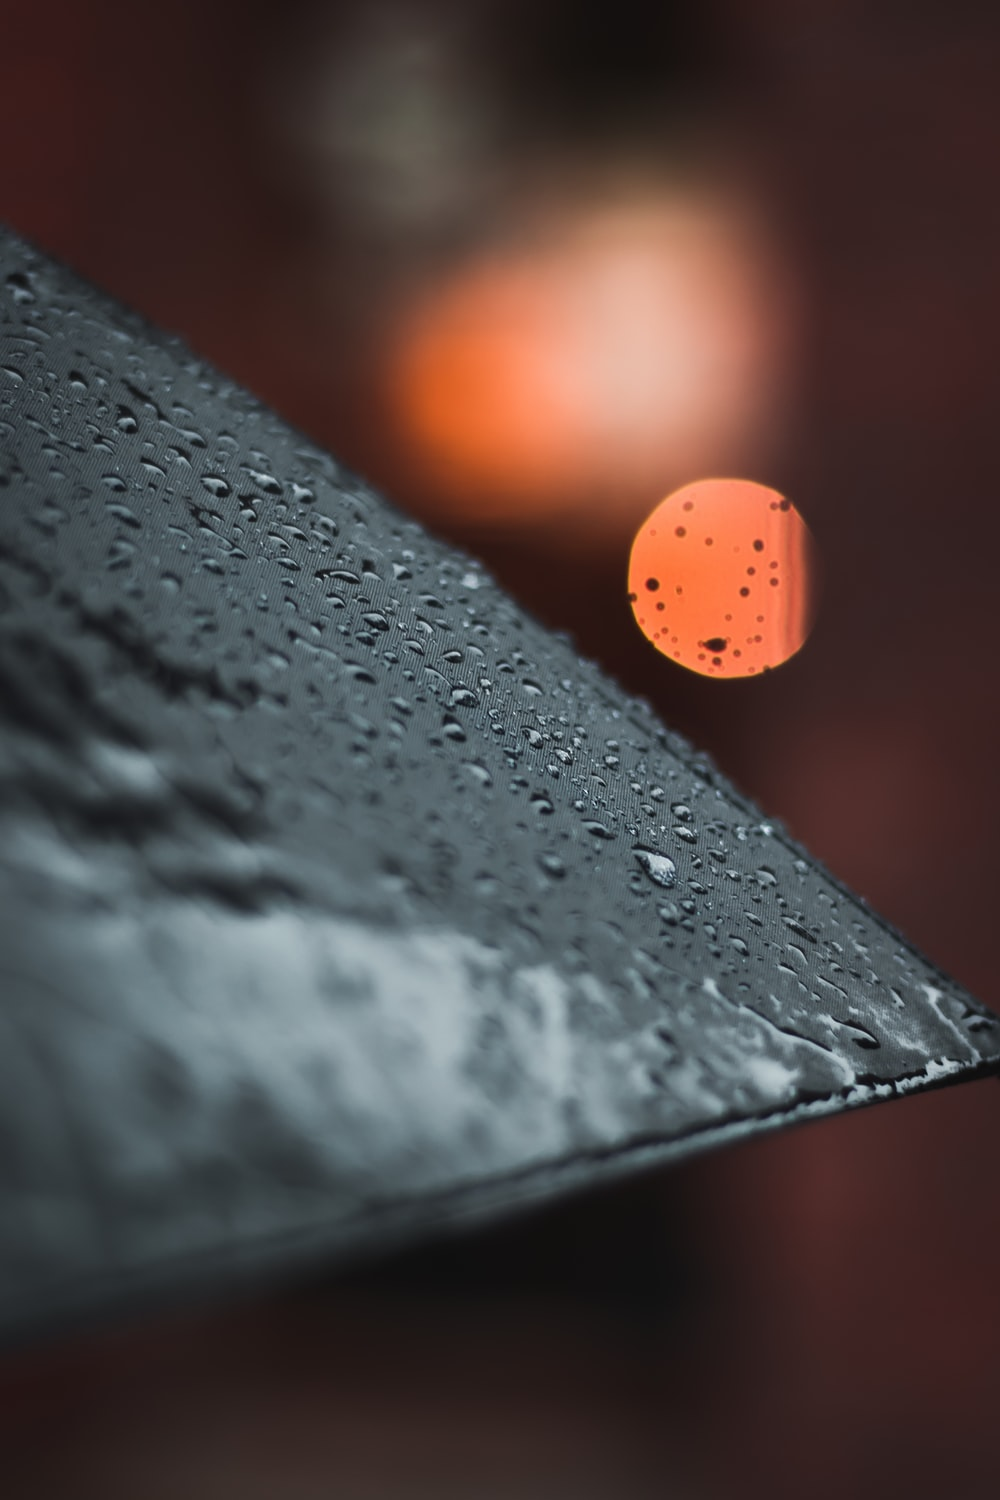 black umbrella with water droplets